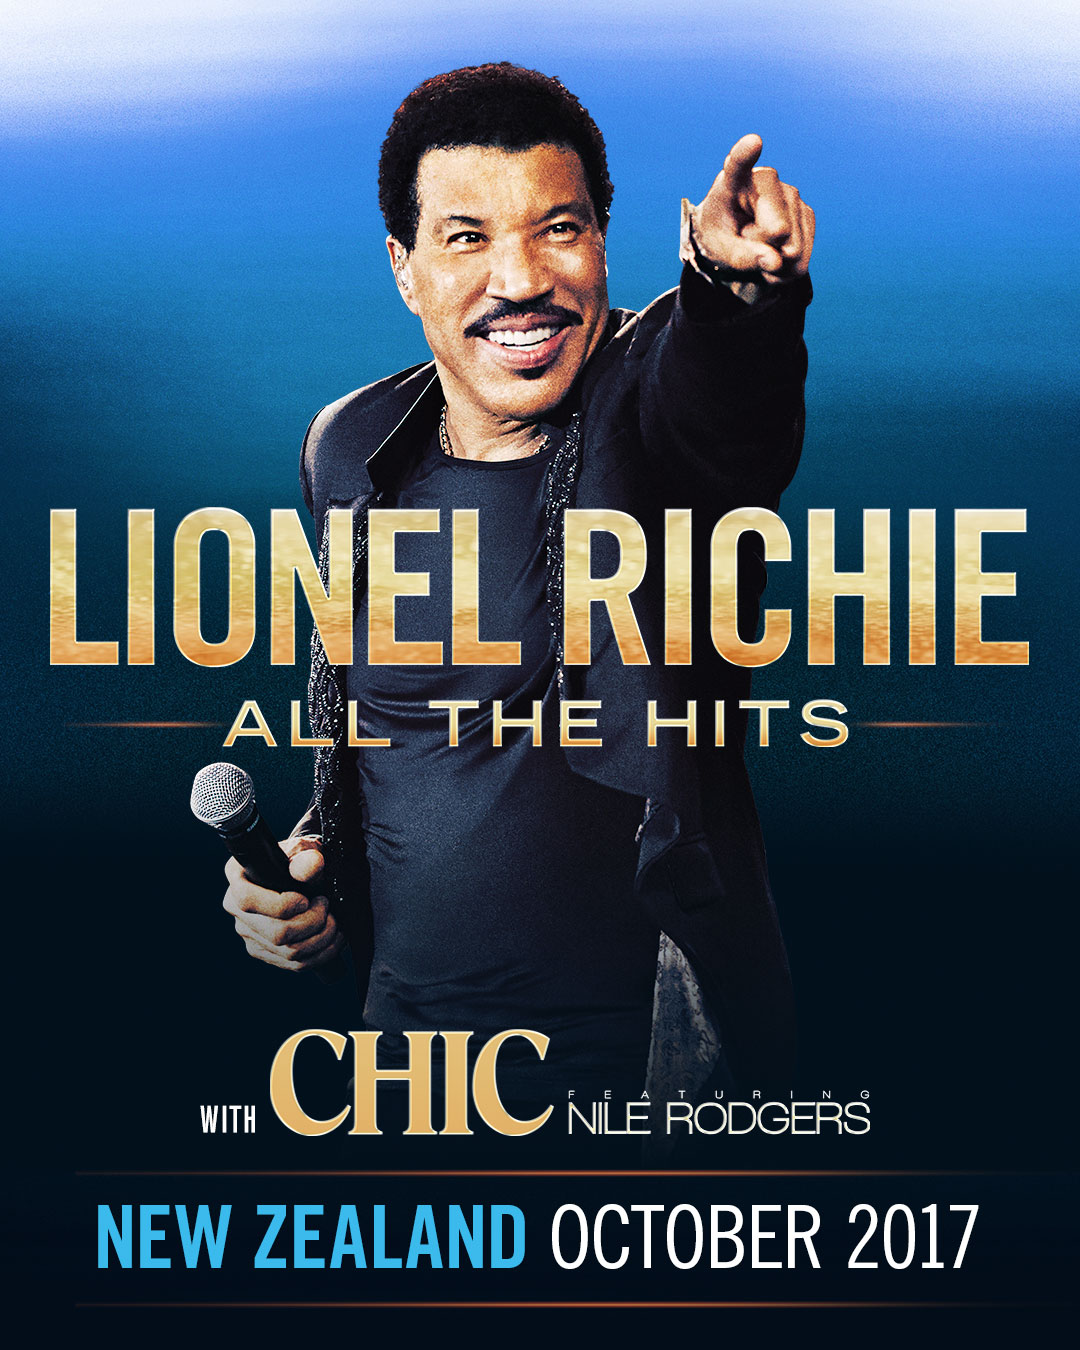 Lionel Richie All The Hits with Chic Nile Rodgers